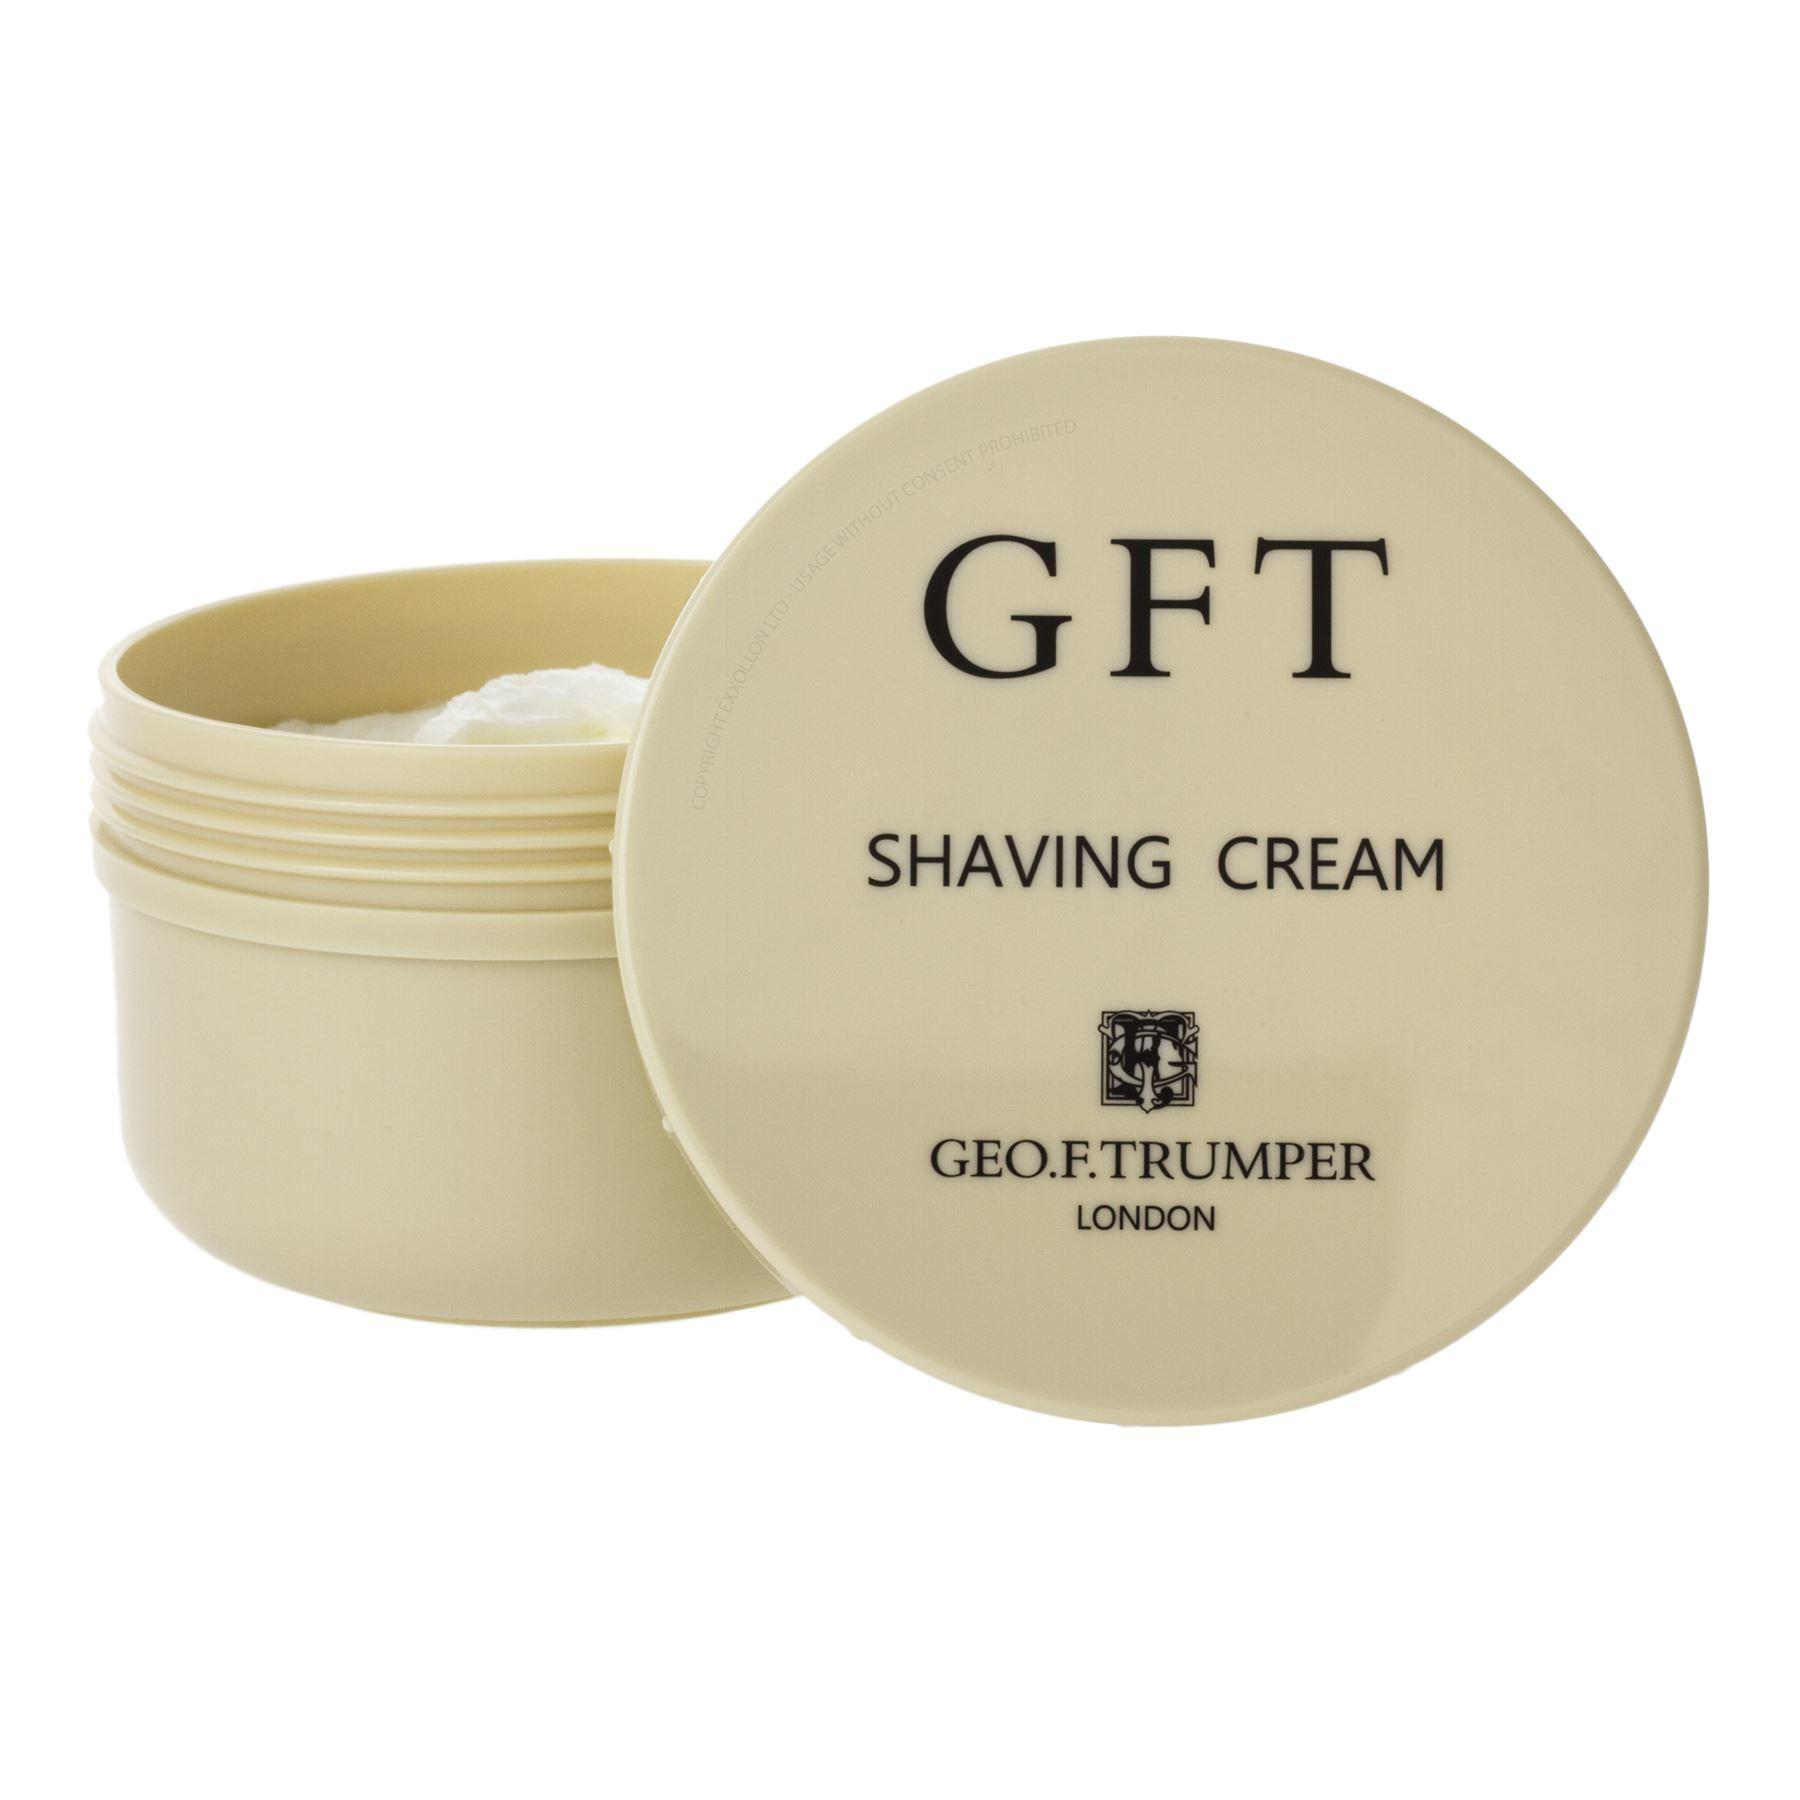 Geo F Trumper GFT Citrus Shaving Cream Bowl